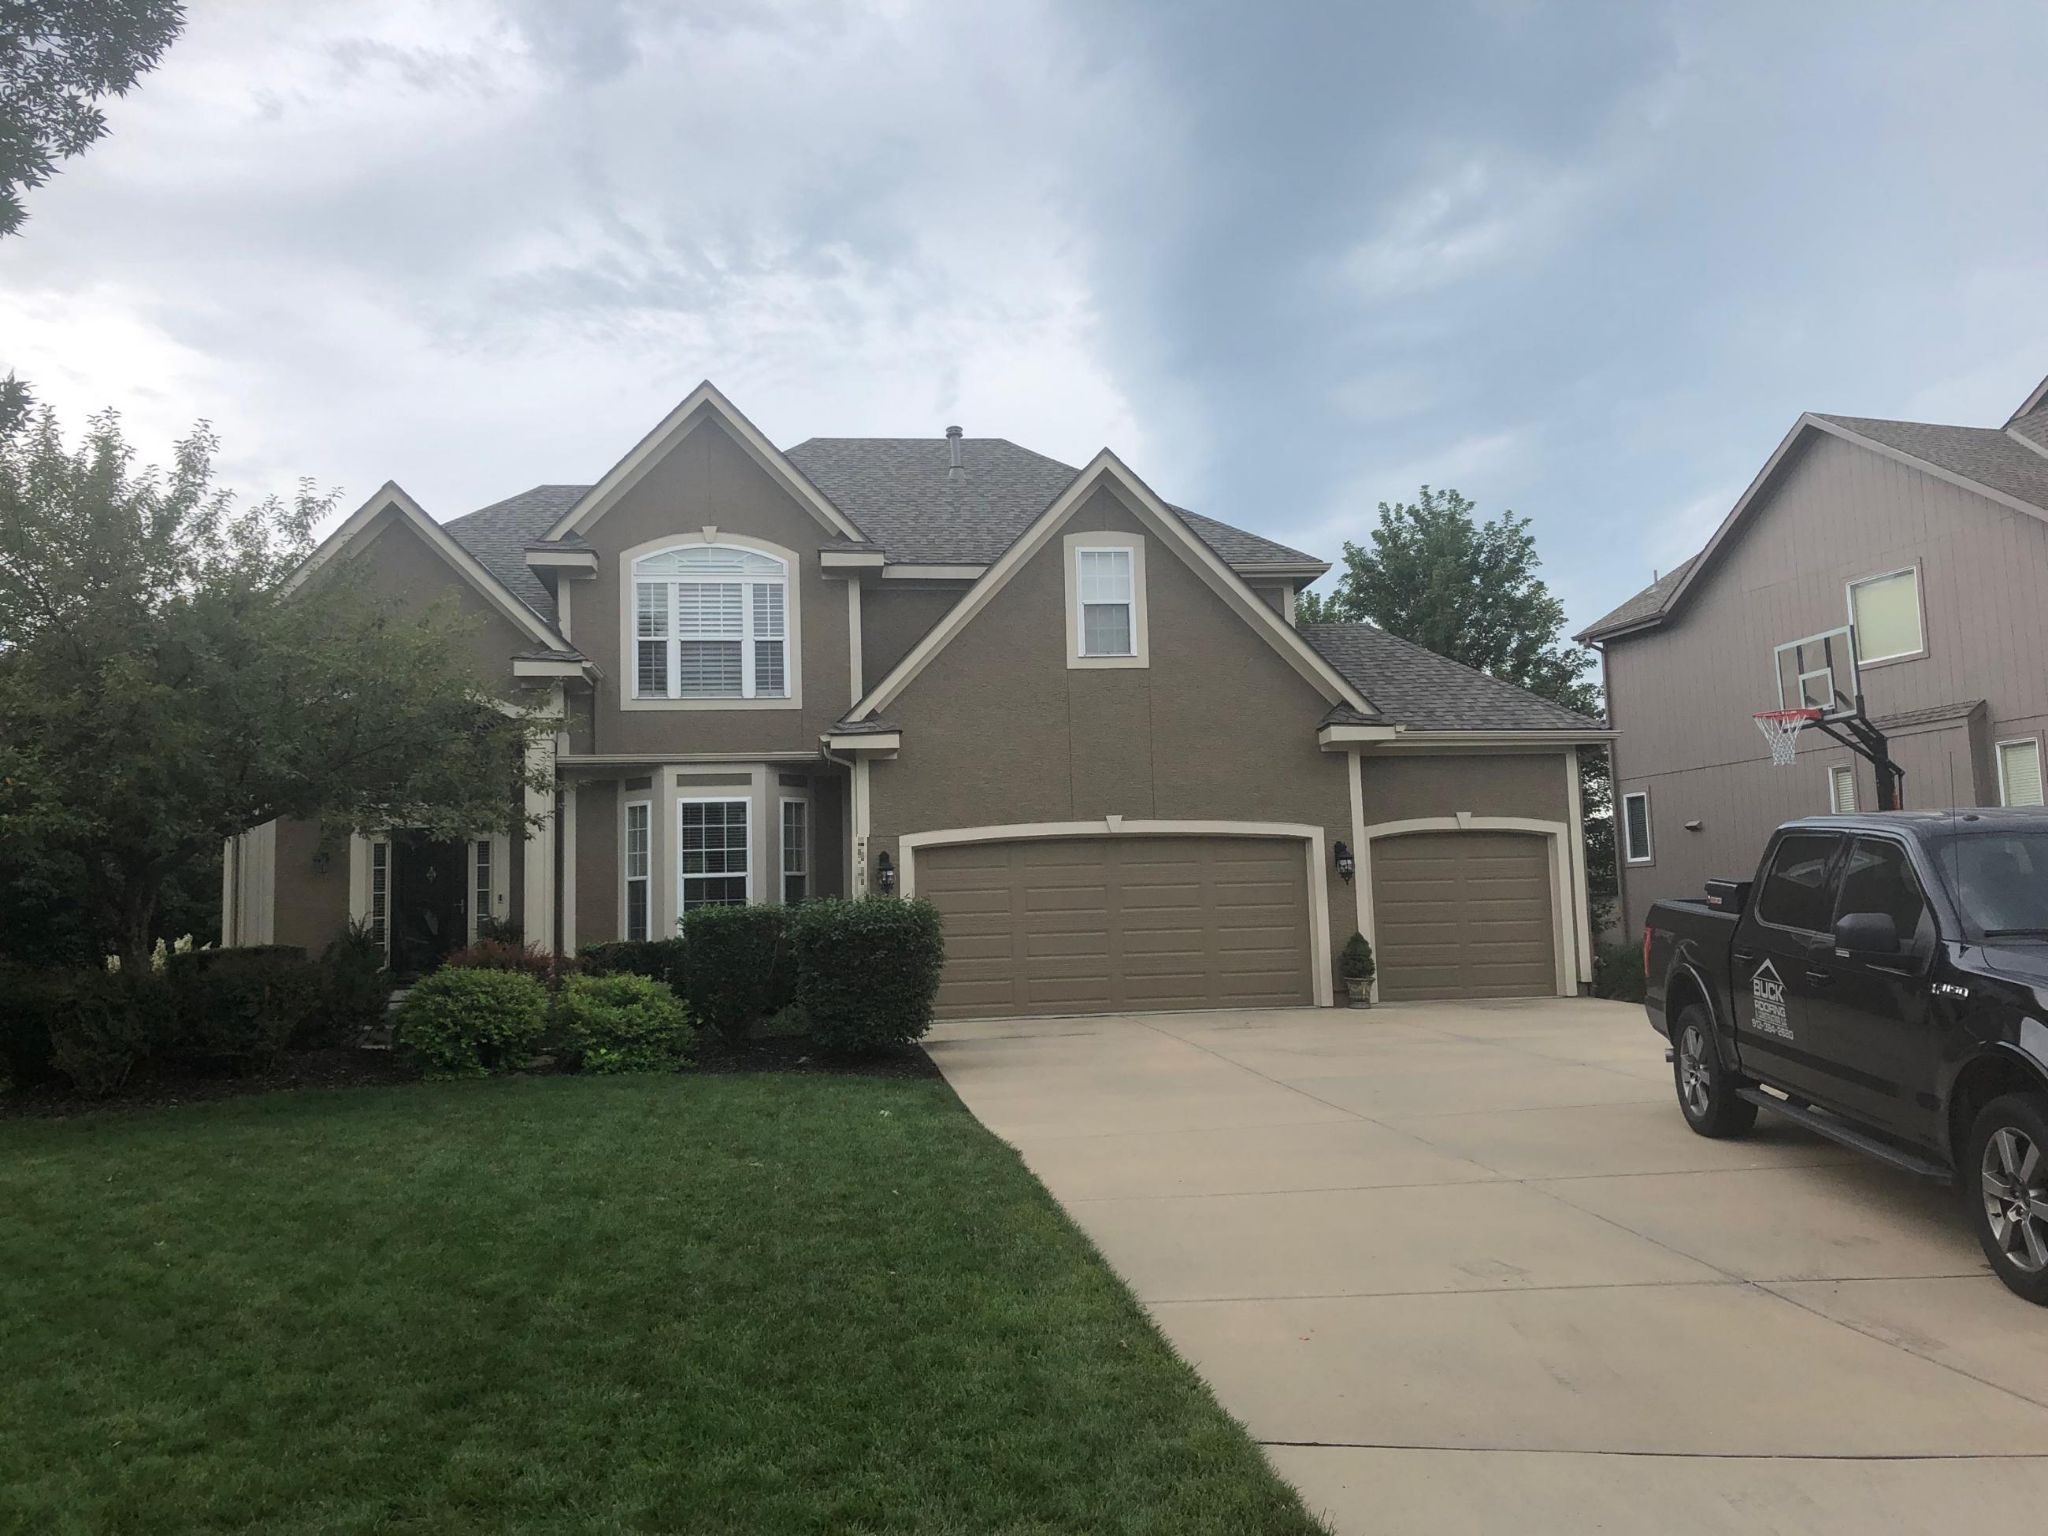 residential roofing company - buck roofing - kansas and missouri - certainteed northgate - max def weathered wood